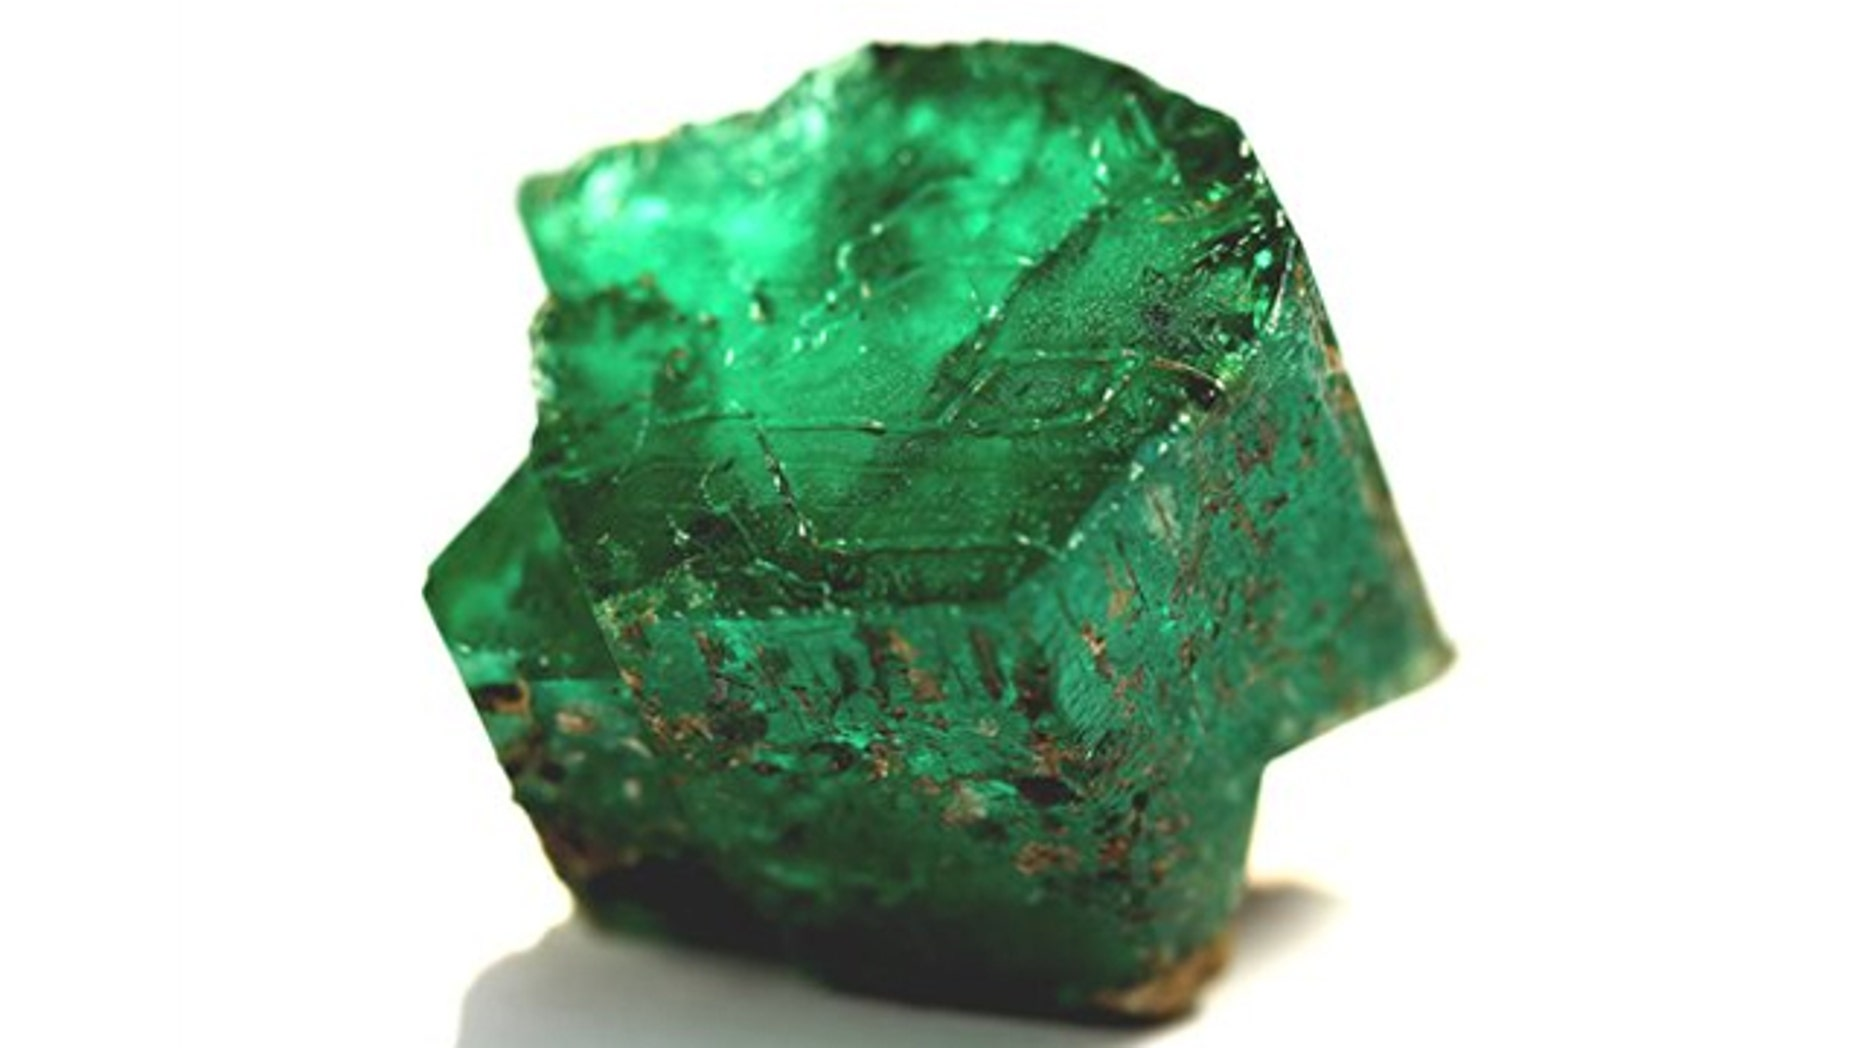 Gem experts say the emerald yielded at a North Carolina farm may be the biggest ever uncovered in North America.